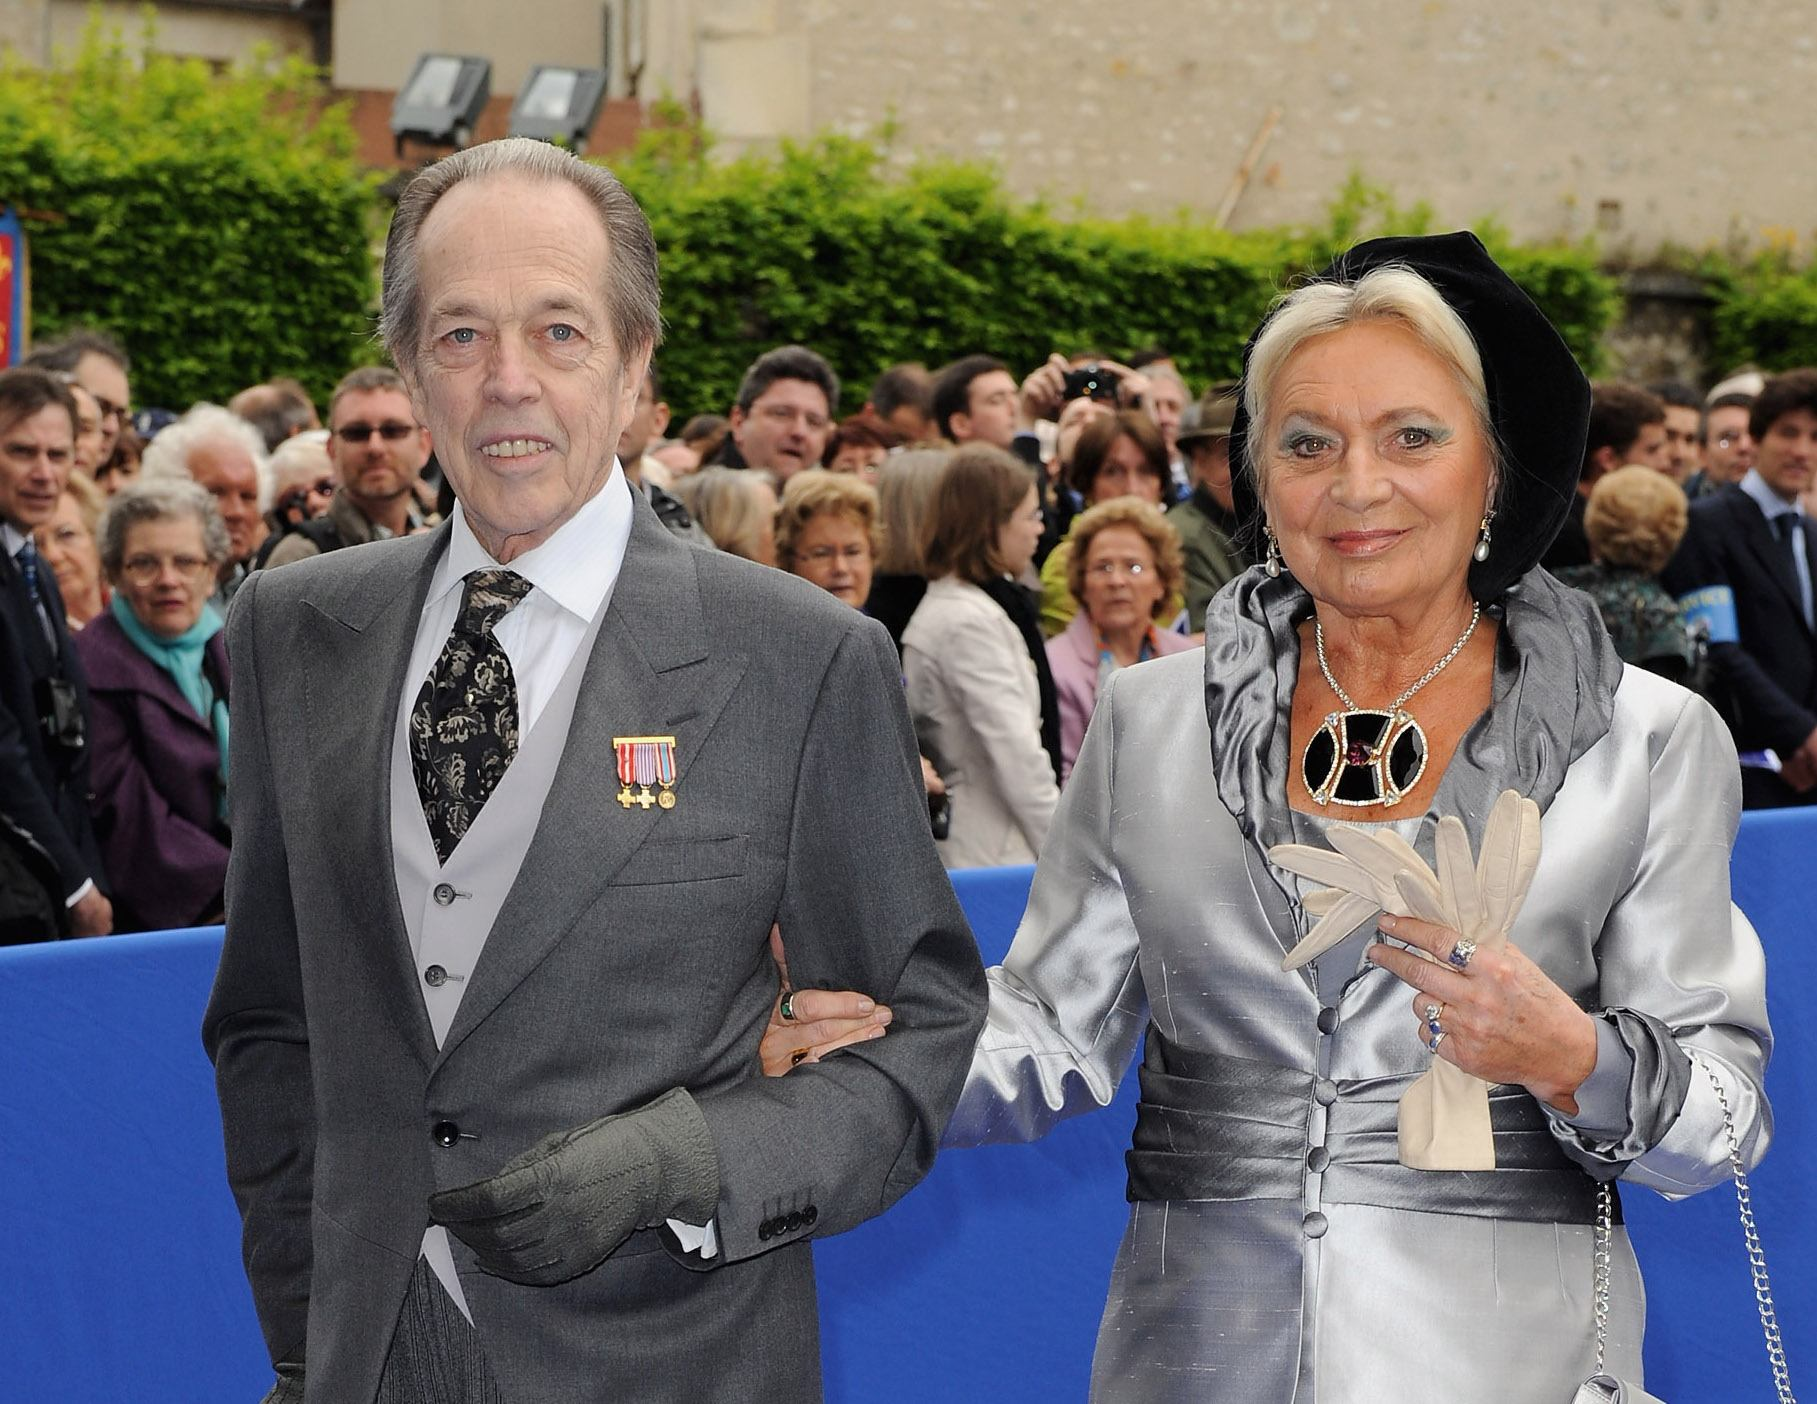 Prince Henri D'Orleans, Duc de Vendome and Philomena de Tornos Celebrate Wedding in Senlis